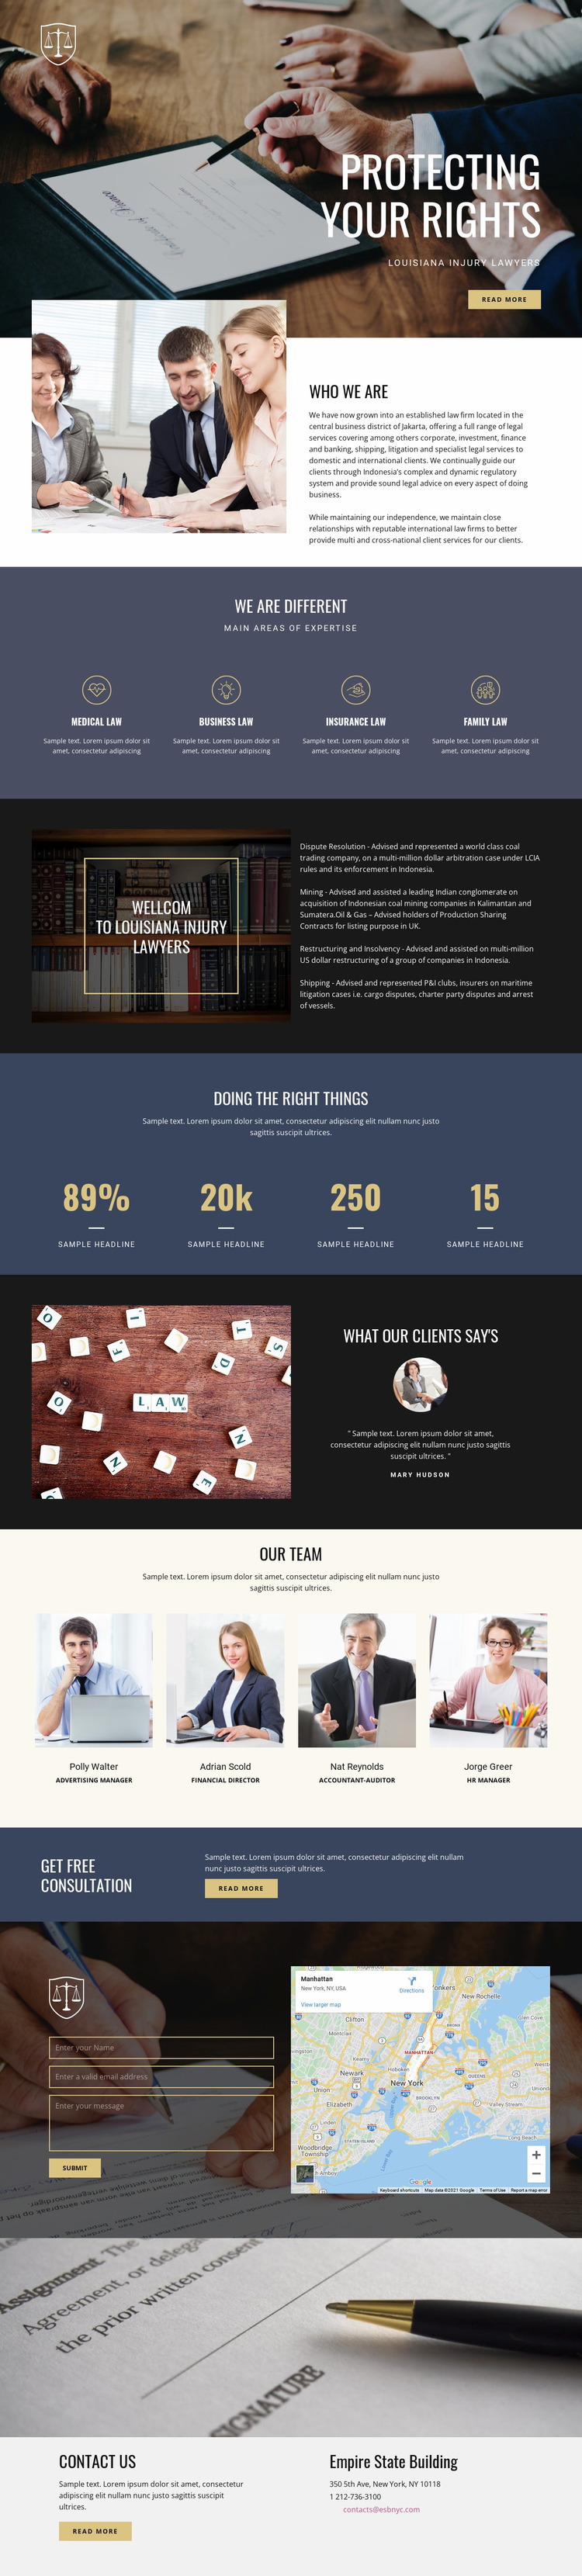 Protecting your rights  Website Mockup